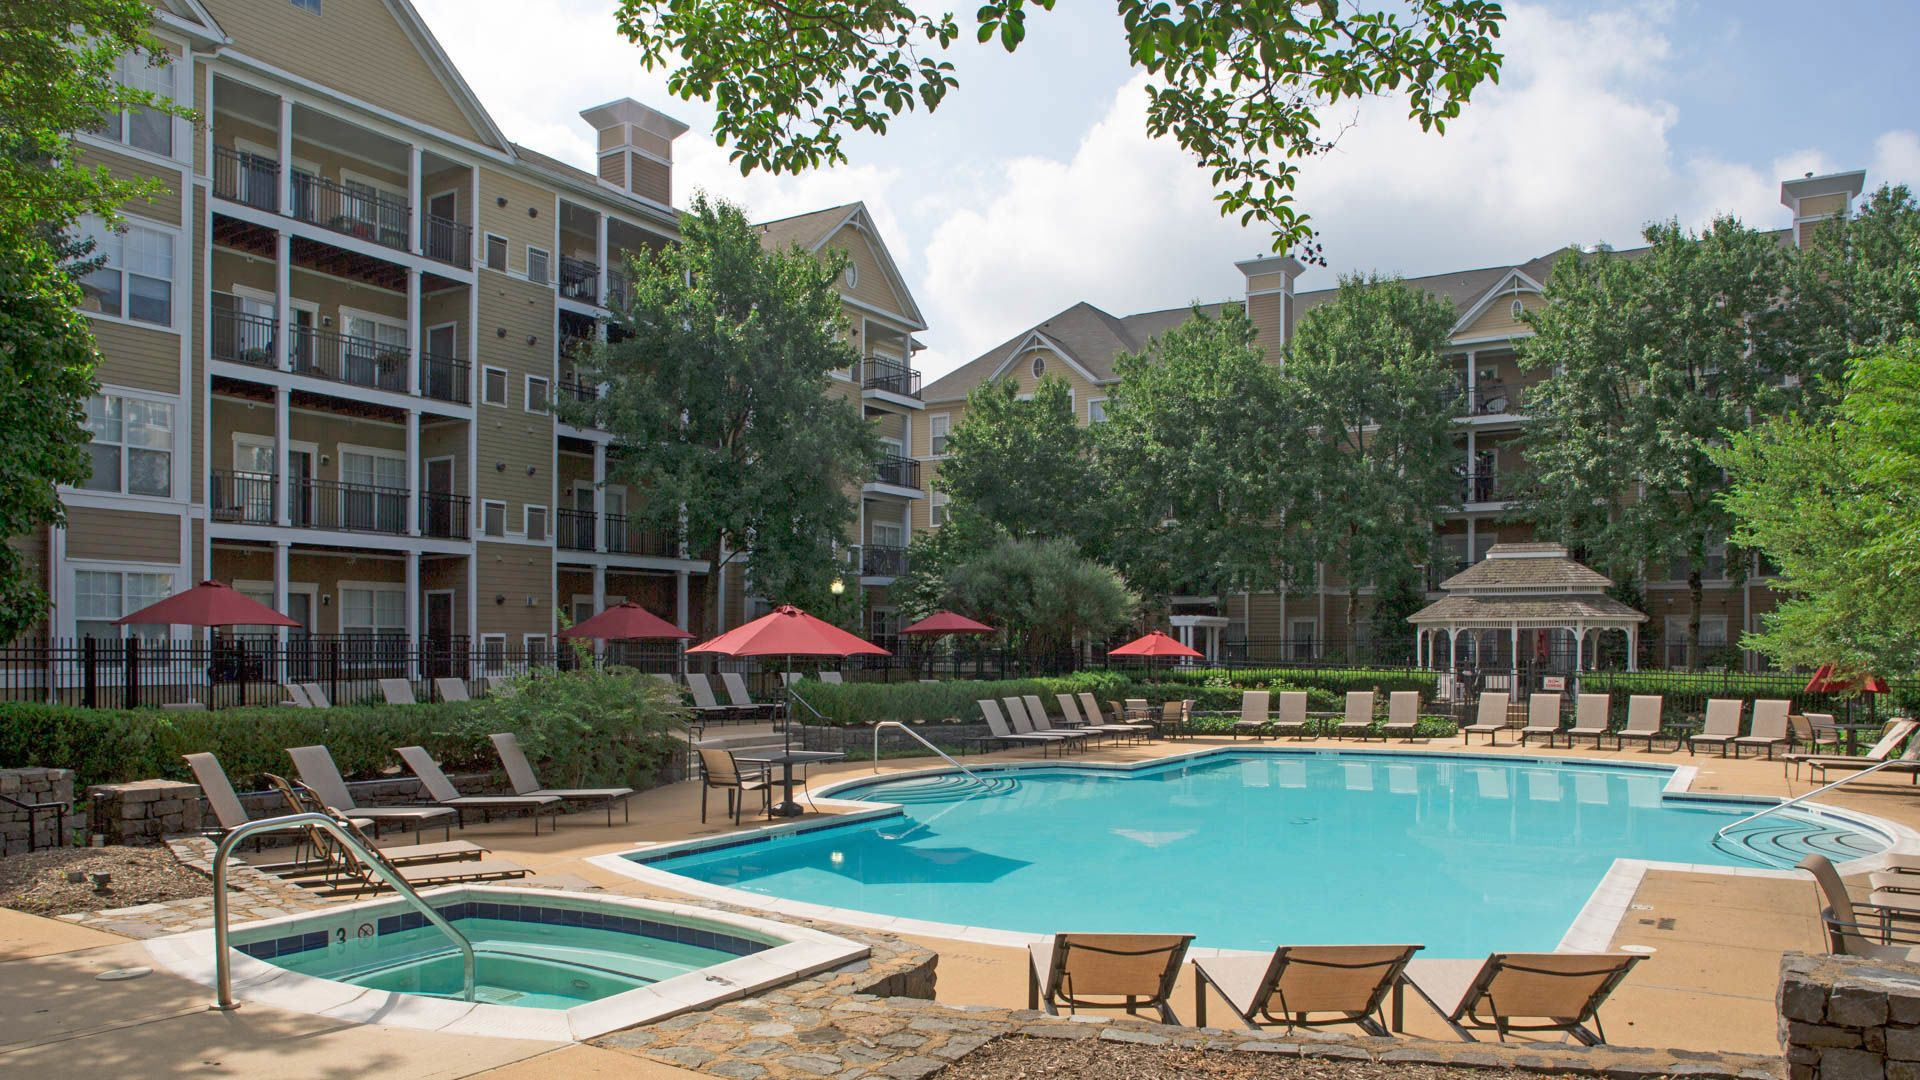 Town Square at Mark Center Apartments - Swimming Pool